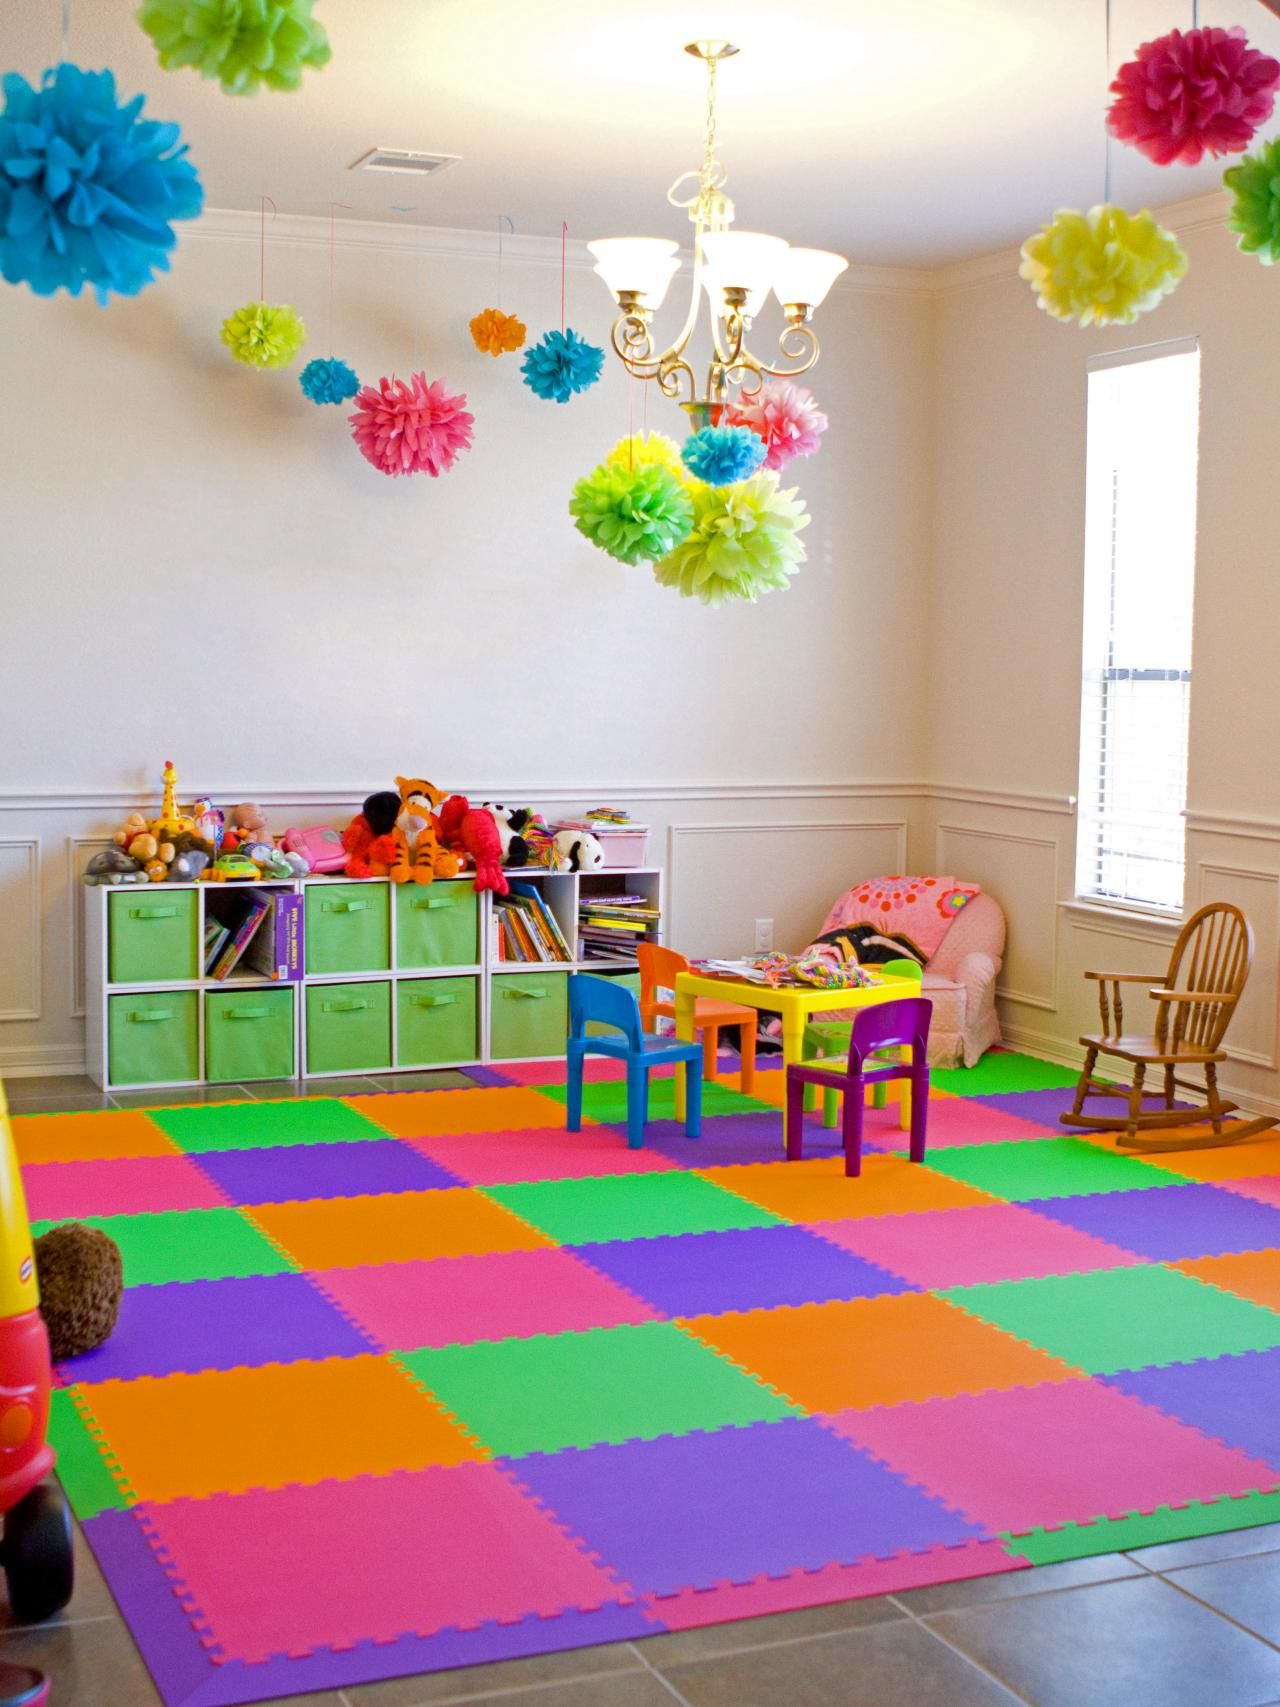 8 Kids 39 Flooring Ideas Tissue Pom Poms Ceilings And